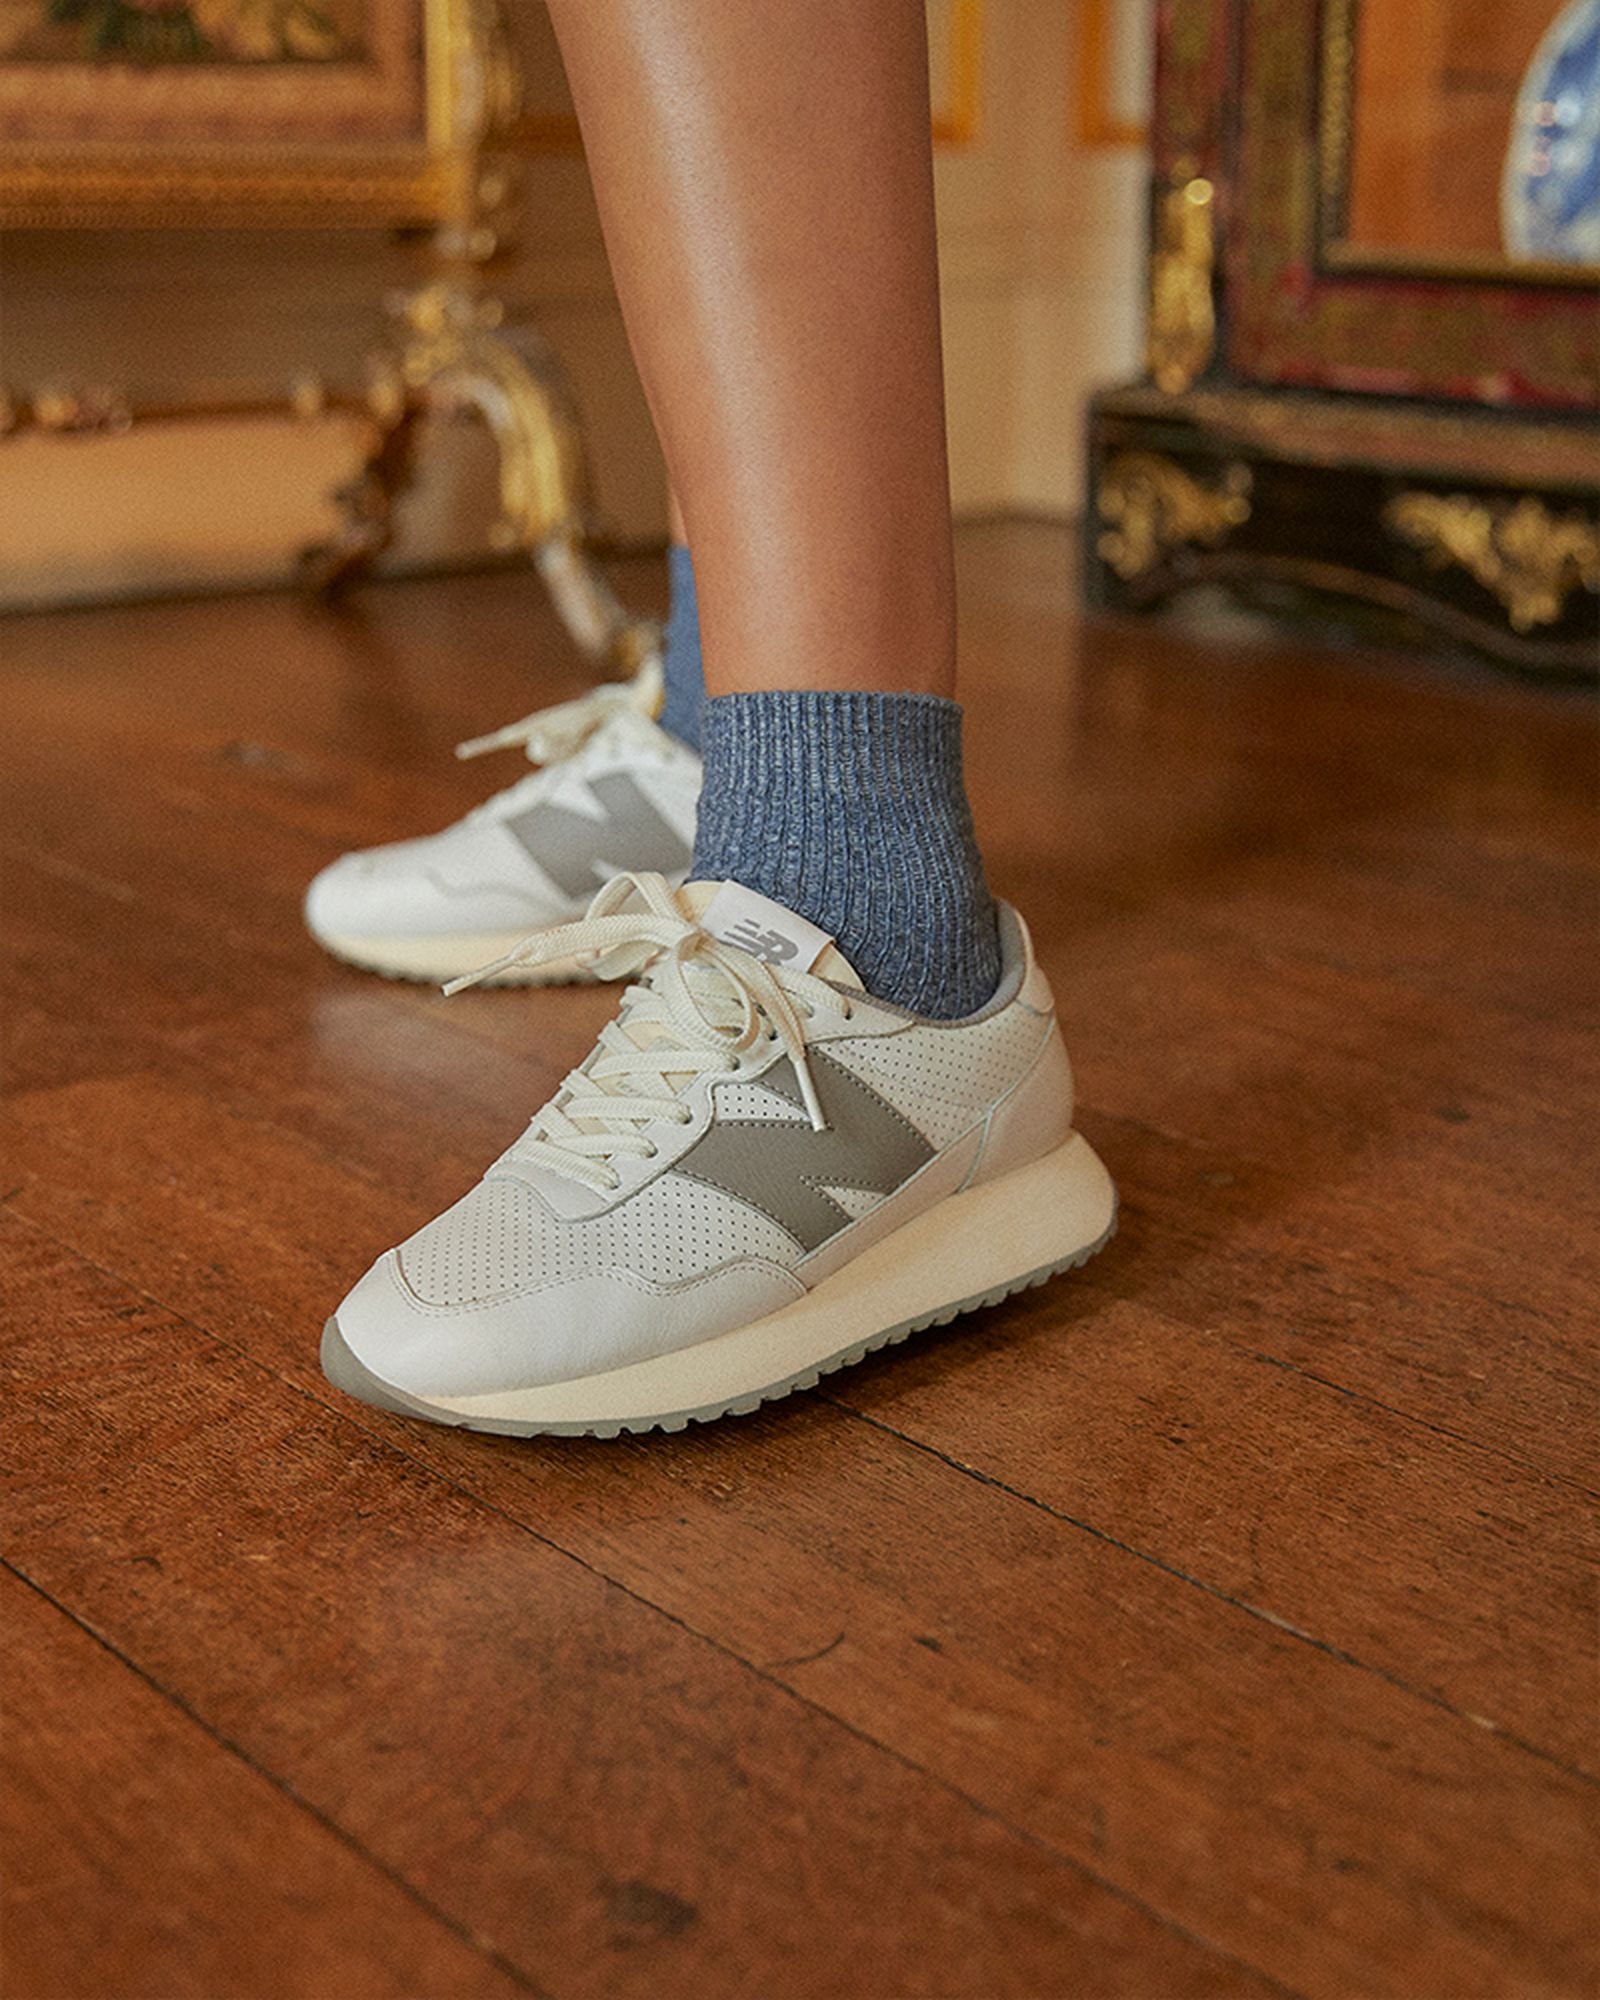 size-new-balance-237-release-date-price-04